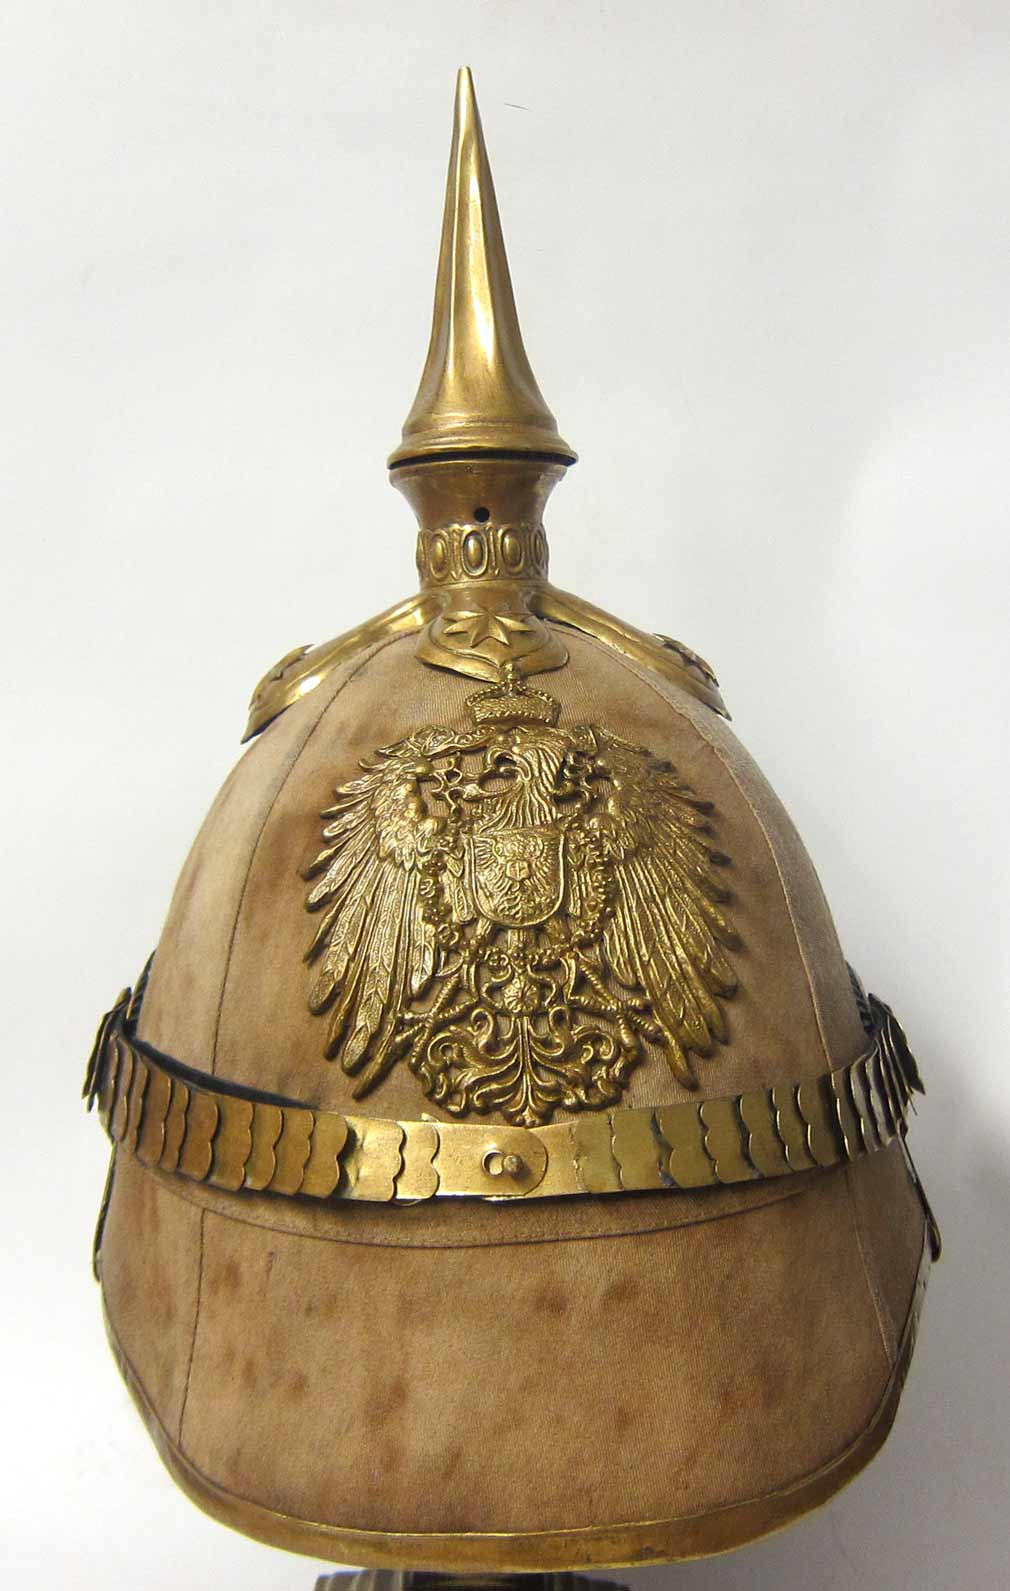 Tropical Helmet for Officers of the Schutztruppe - Diplomatic Corps